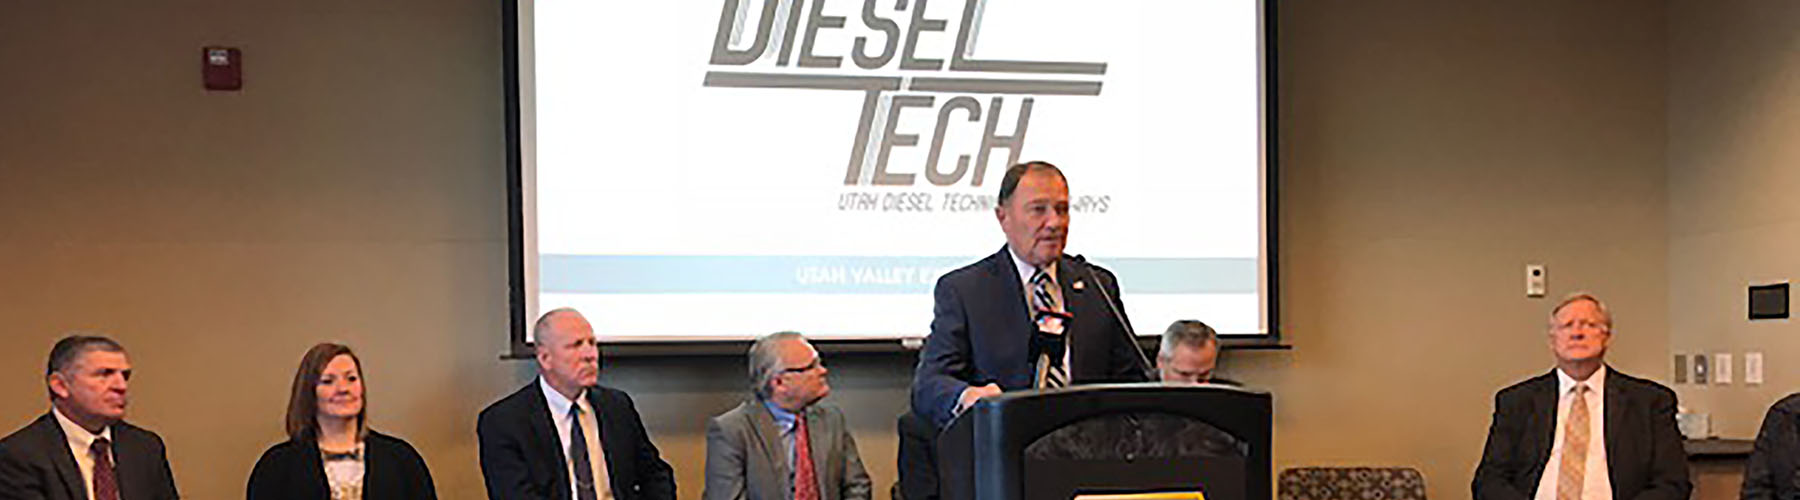 The Governor Announces the Diesel Tech Partnership in Utah County